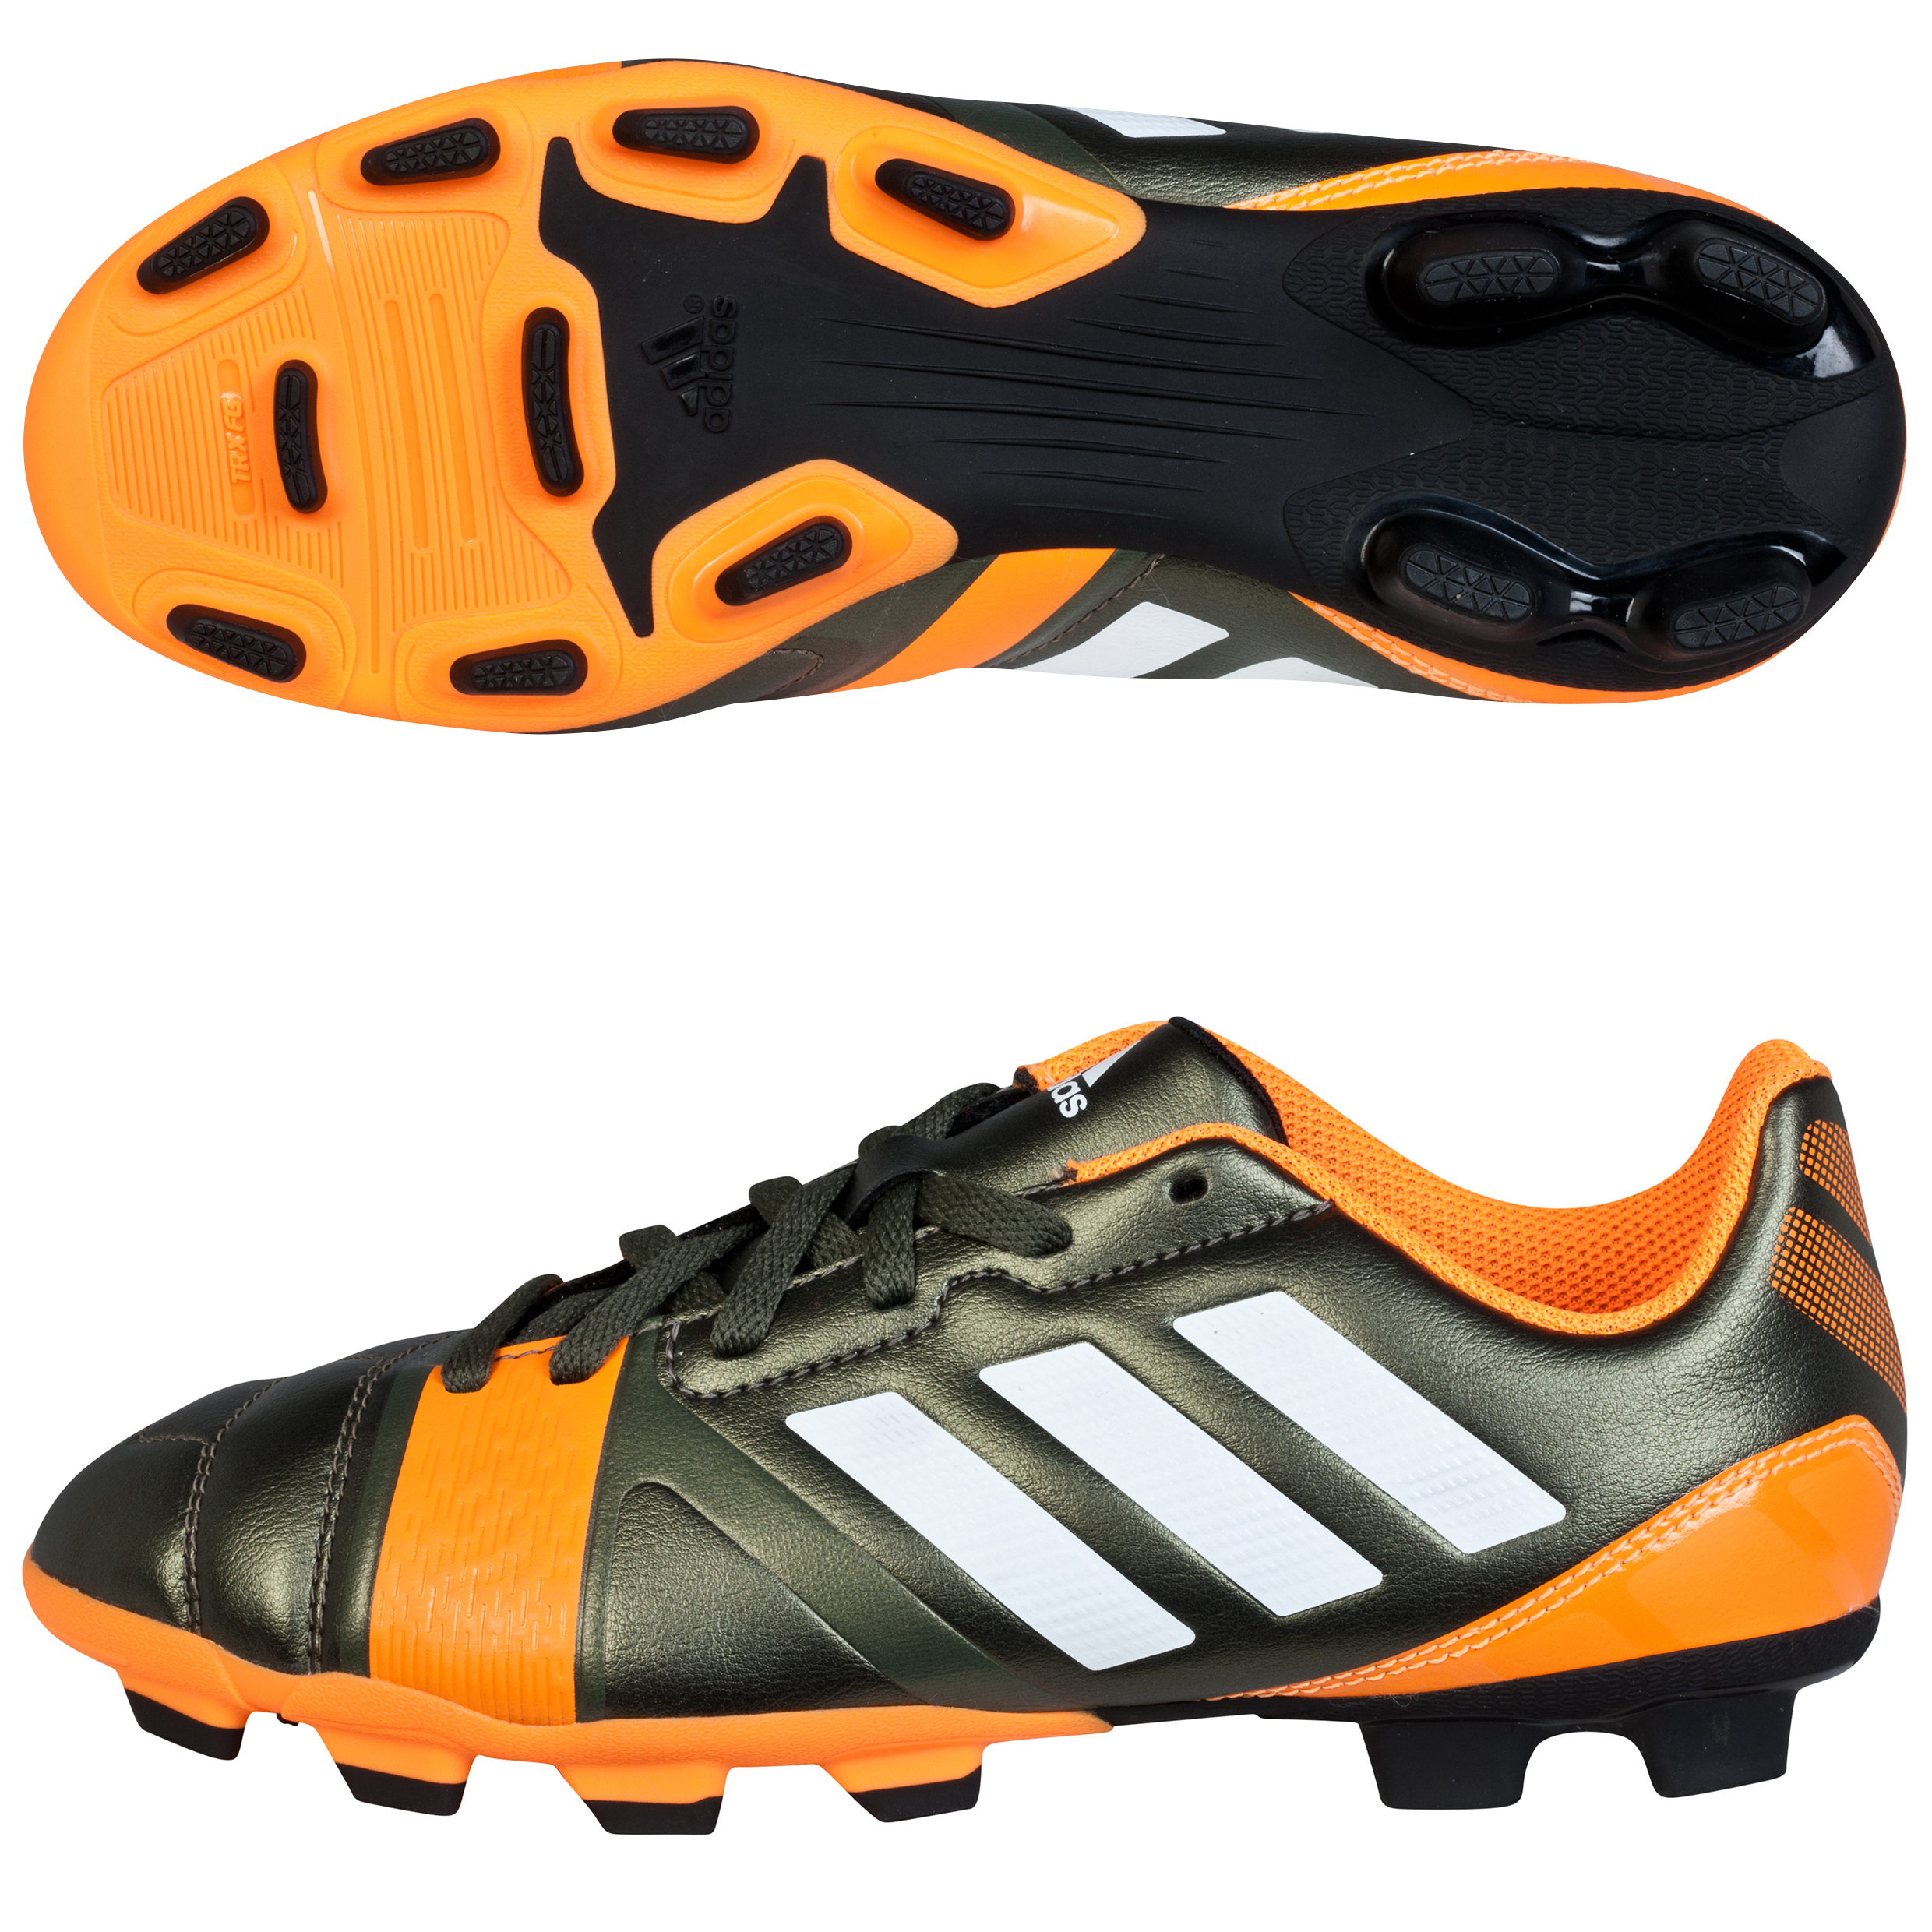 adidas Nitrocharge 3.0 TRX Firm Ground Football Boots - Kids Dk Green